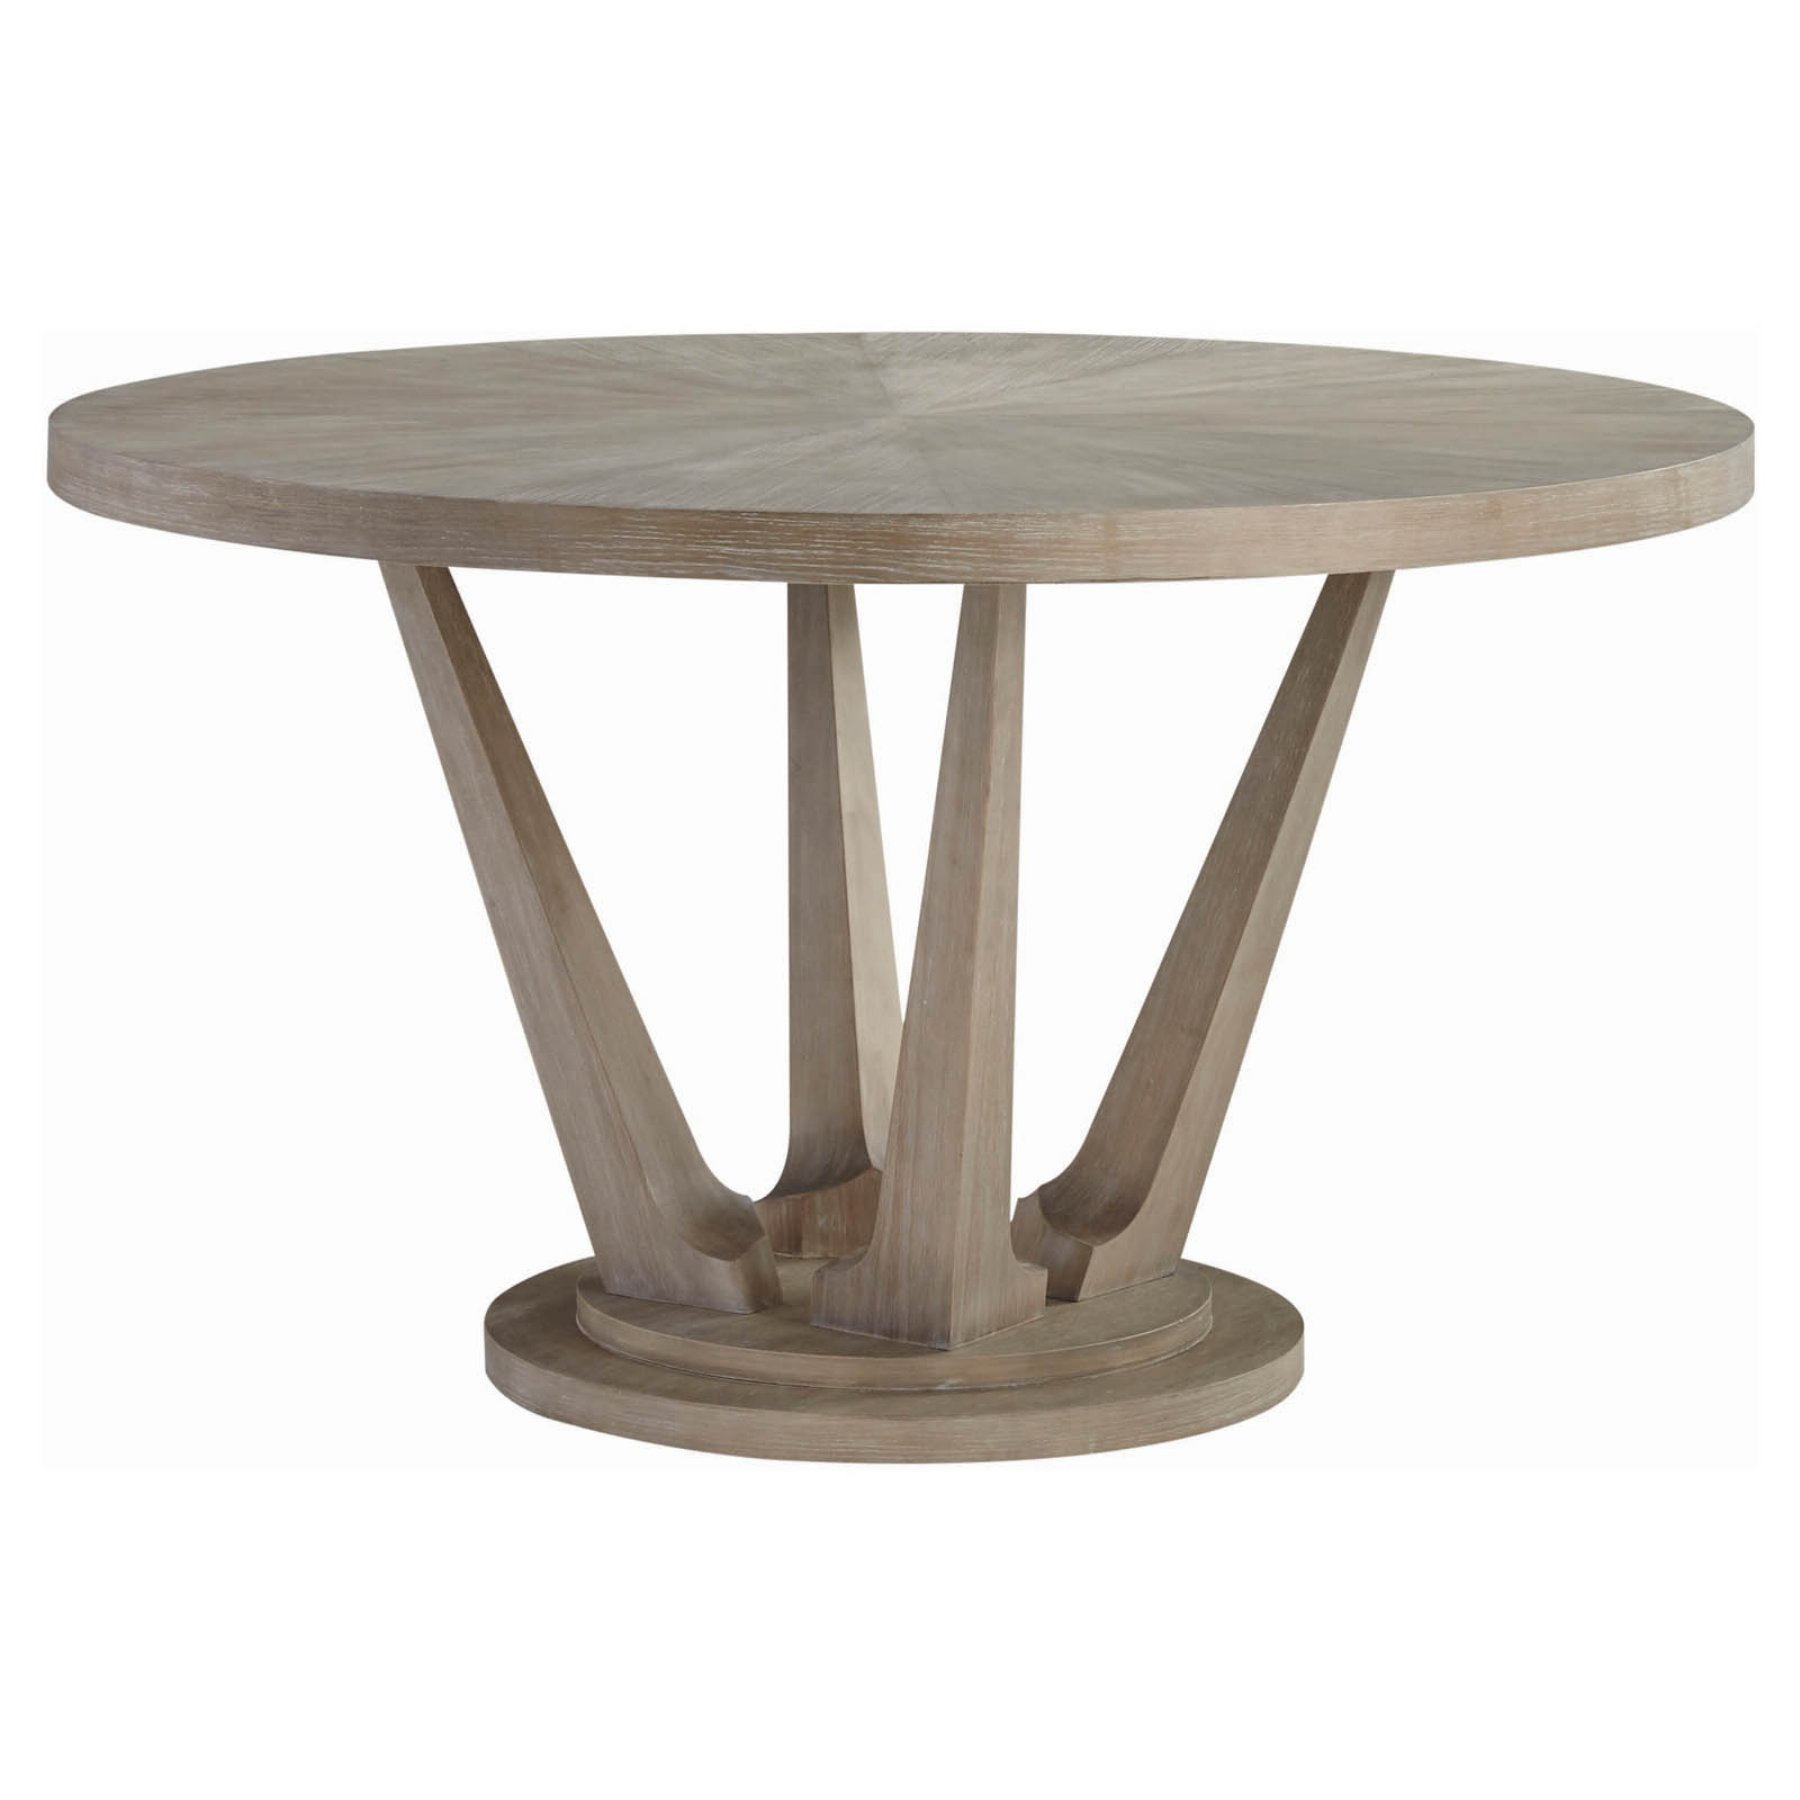 Palliser Alexandra Round Dining Table | Products In 2019 Within Most Popular Brown Wash Livingston Extending Dining Tables (View 6 of 25)